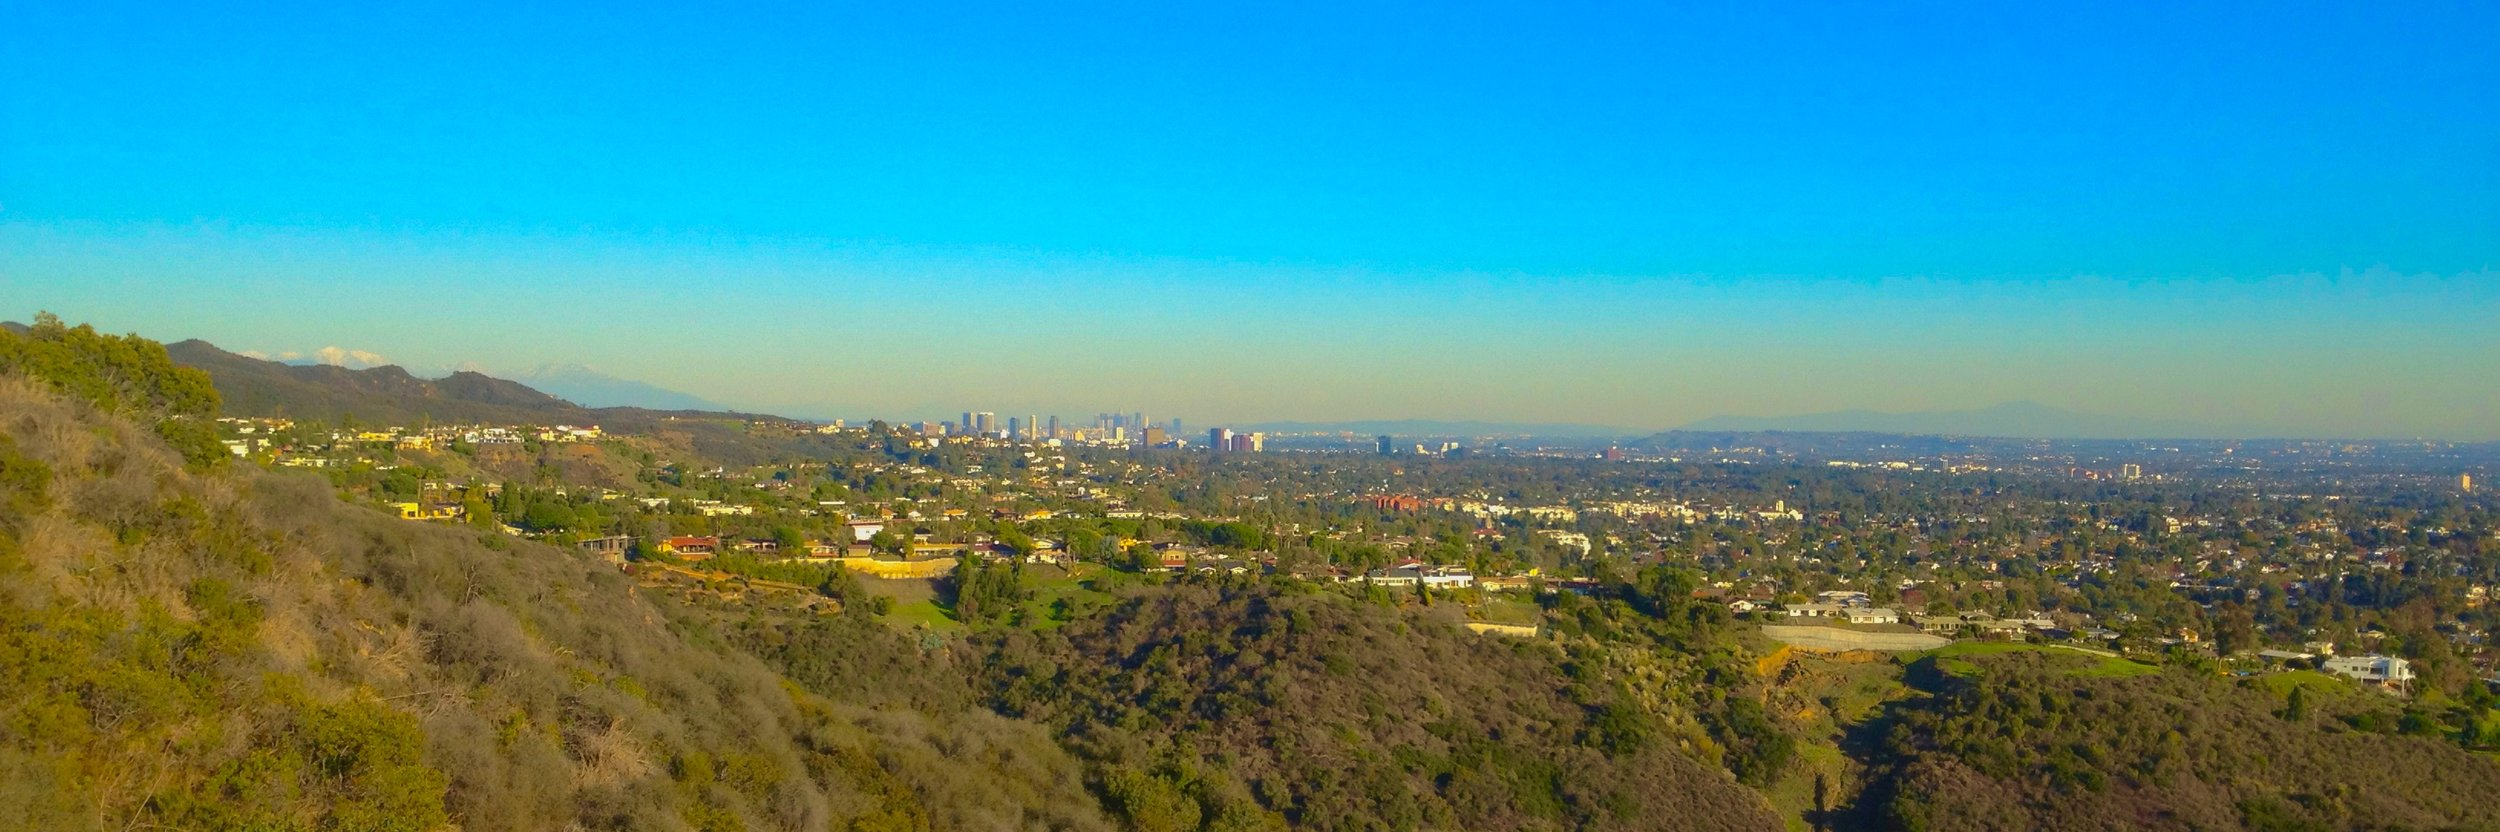 A view of downtown Los Angeles from the Santa Monica Mountains. Note the iconic inversion layer of smog. High levels of atmospheric pollution have contributed to elevated nitrogen deposition, negatively impacting native ecosystems.